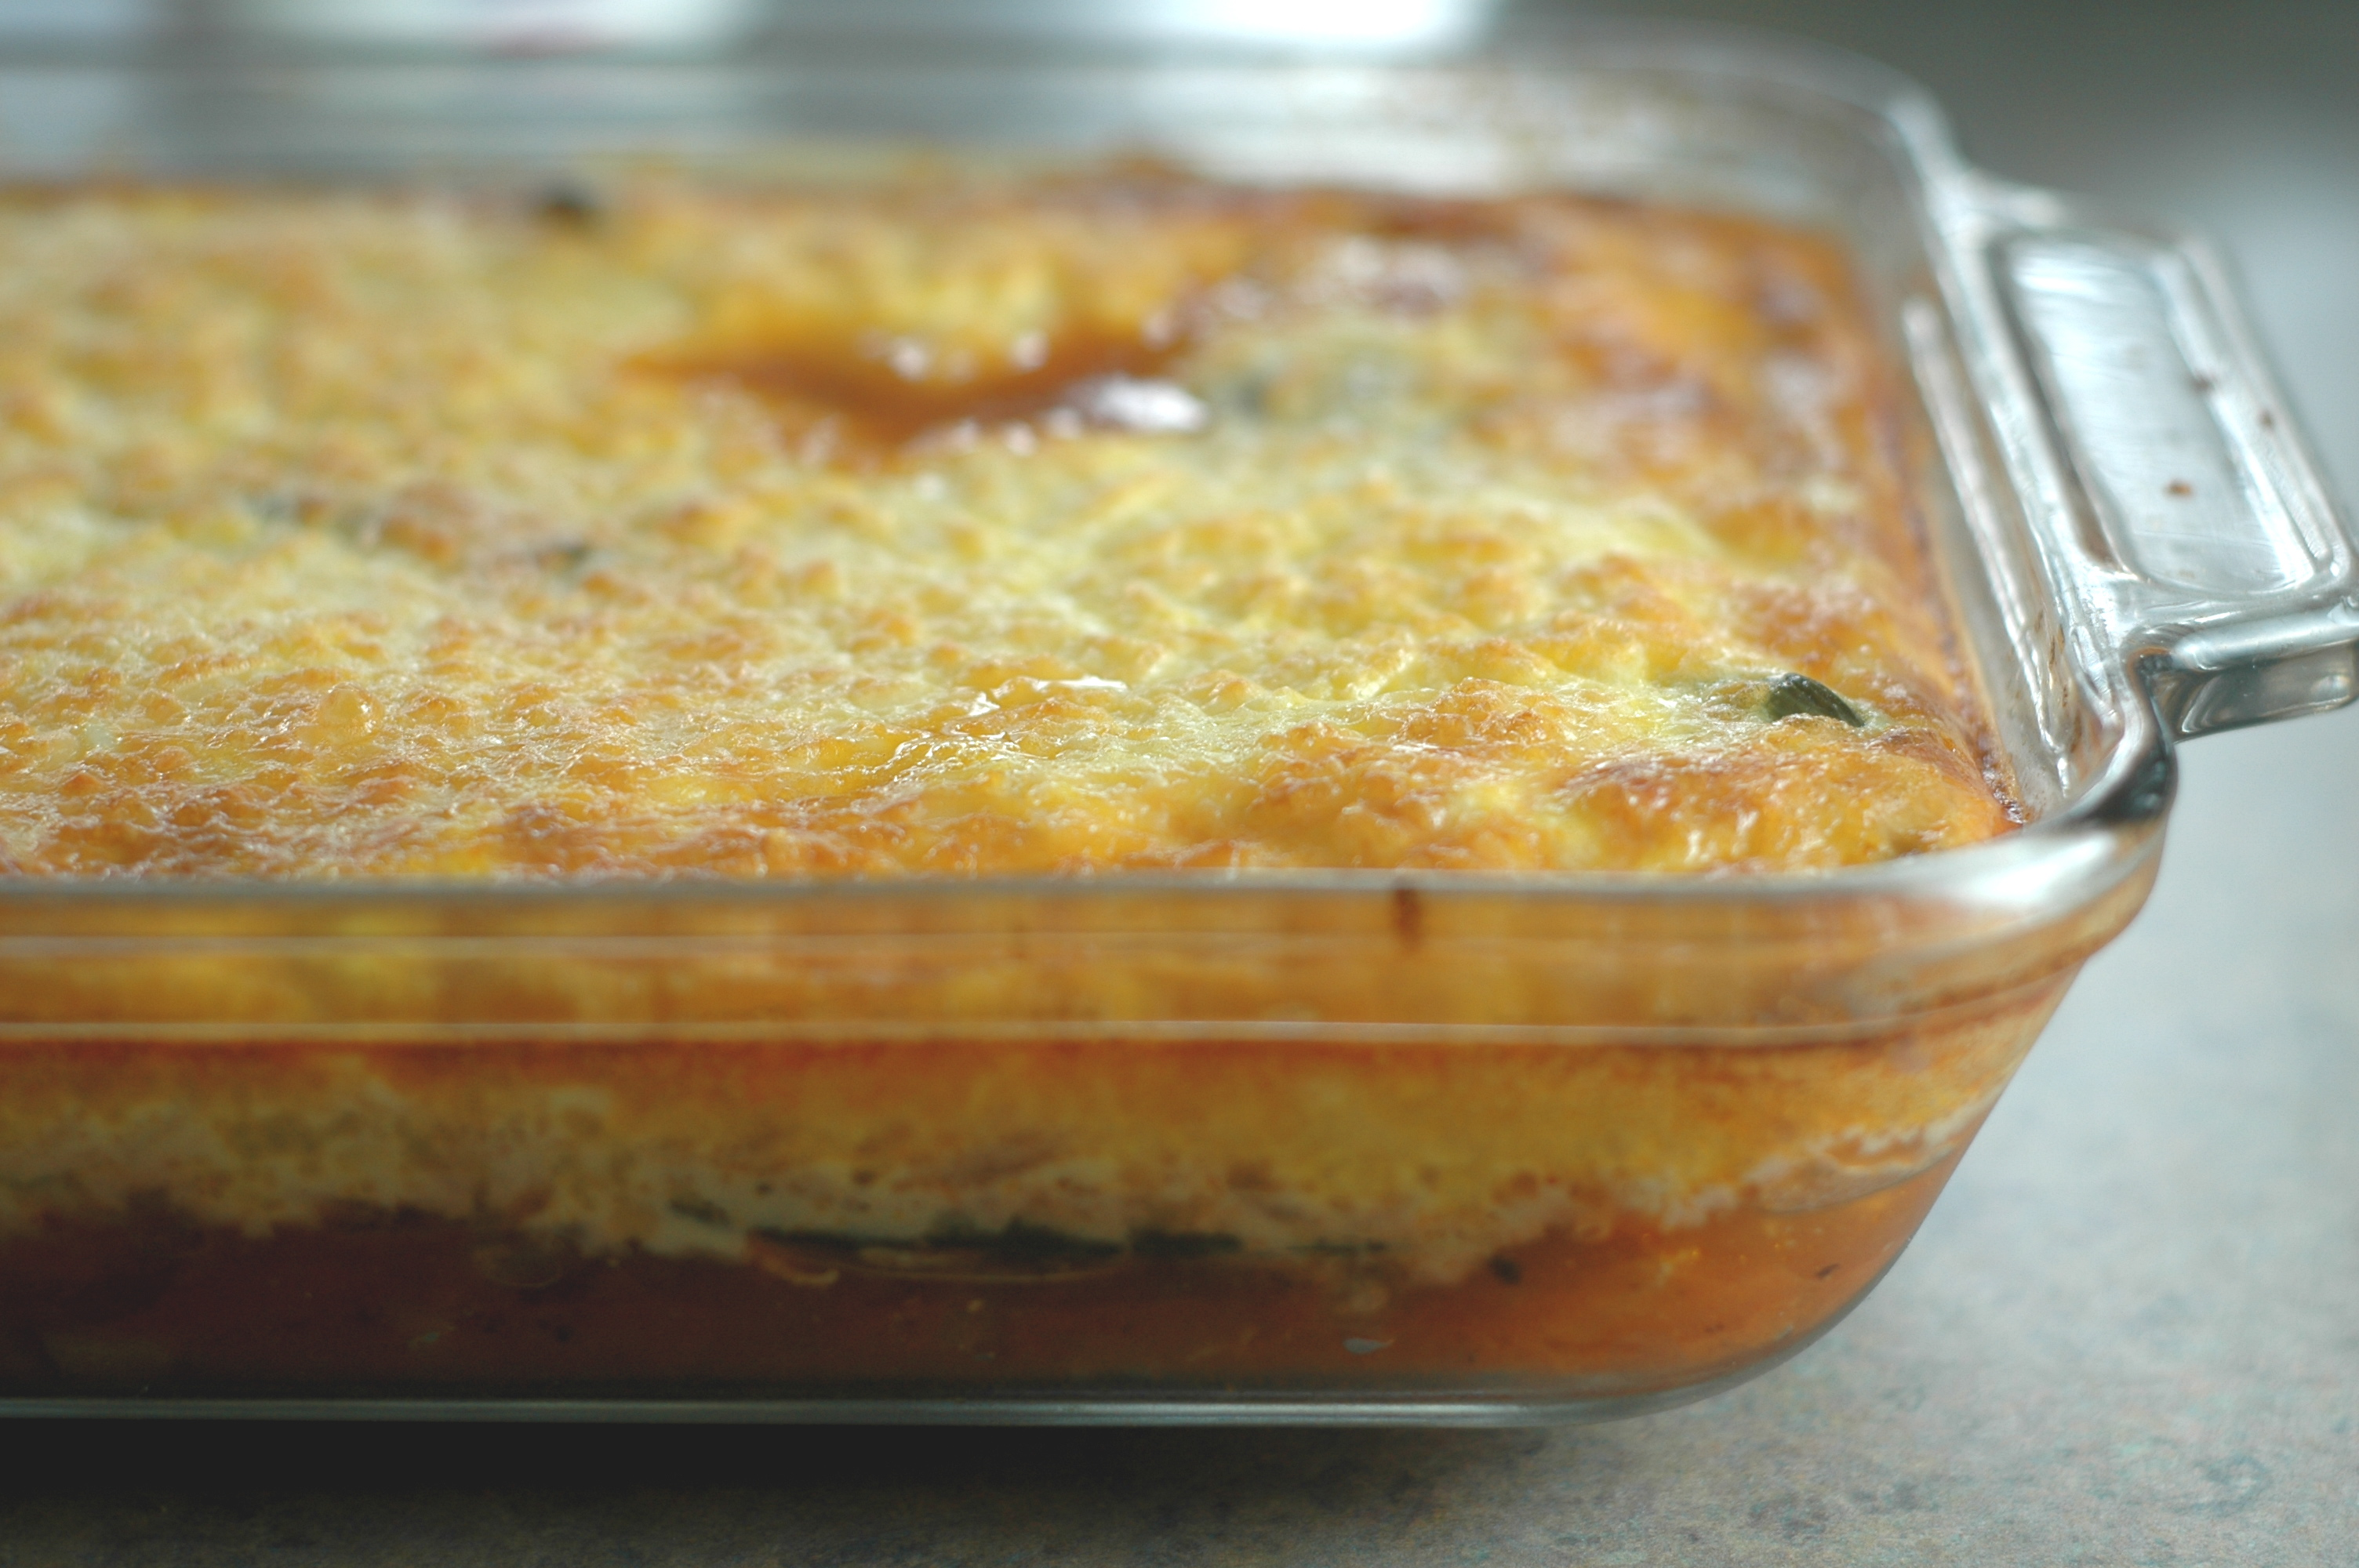 Baked Chile Relleno Casserole